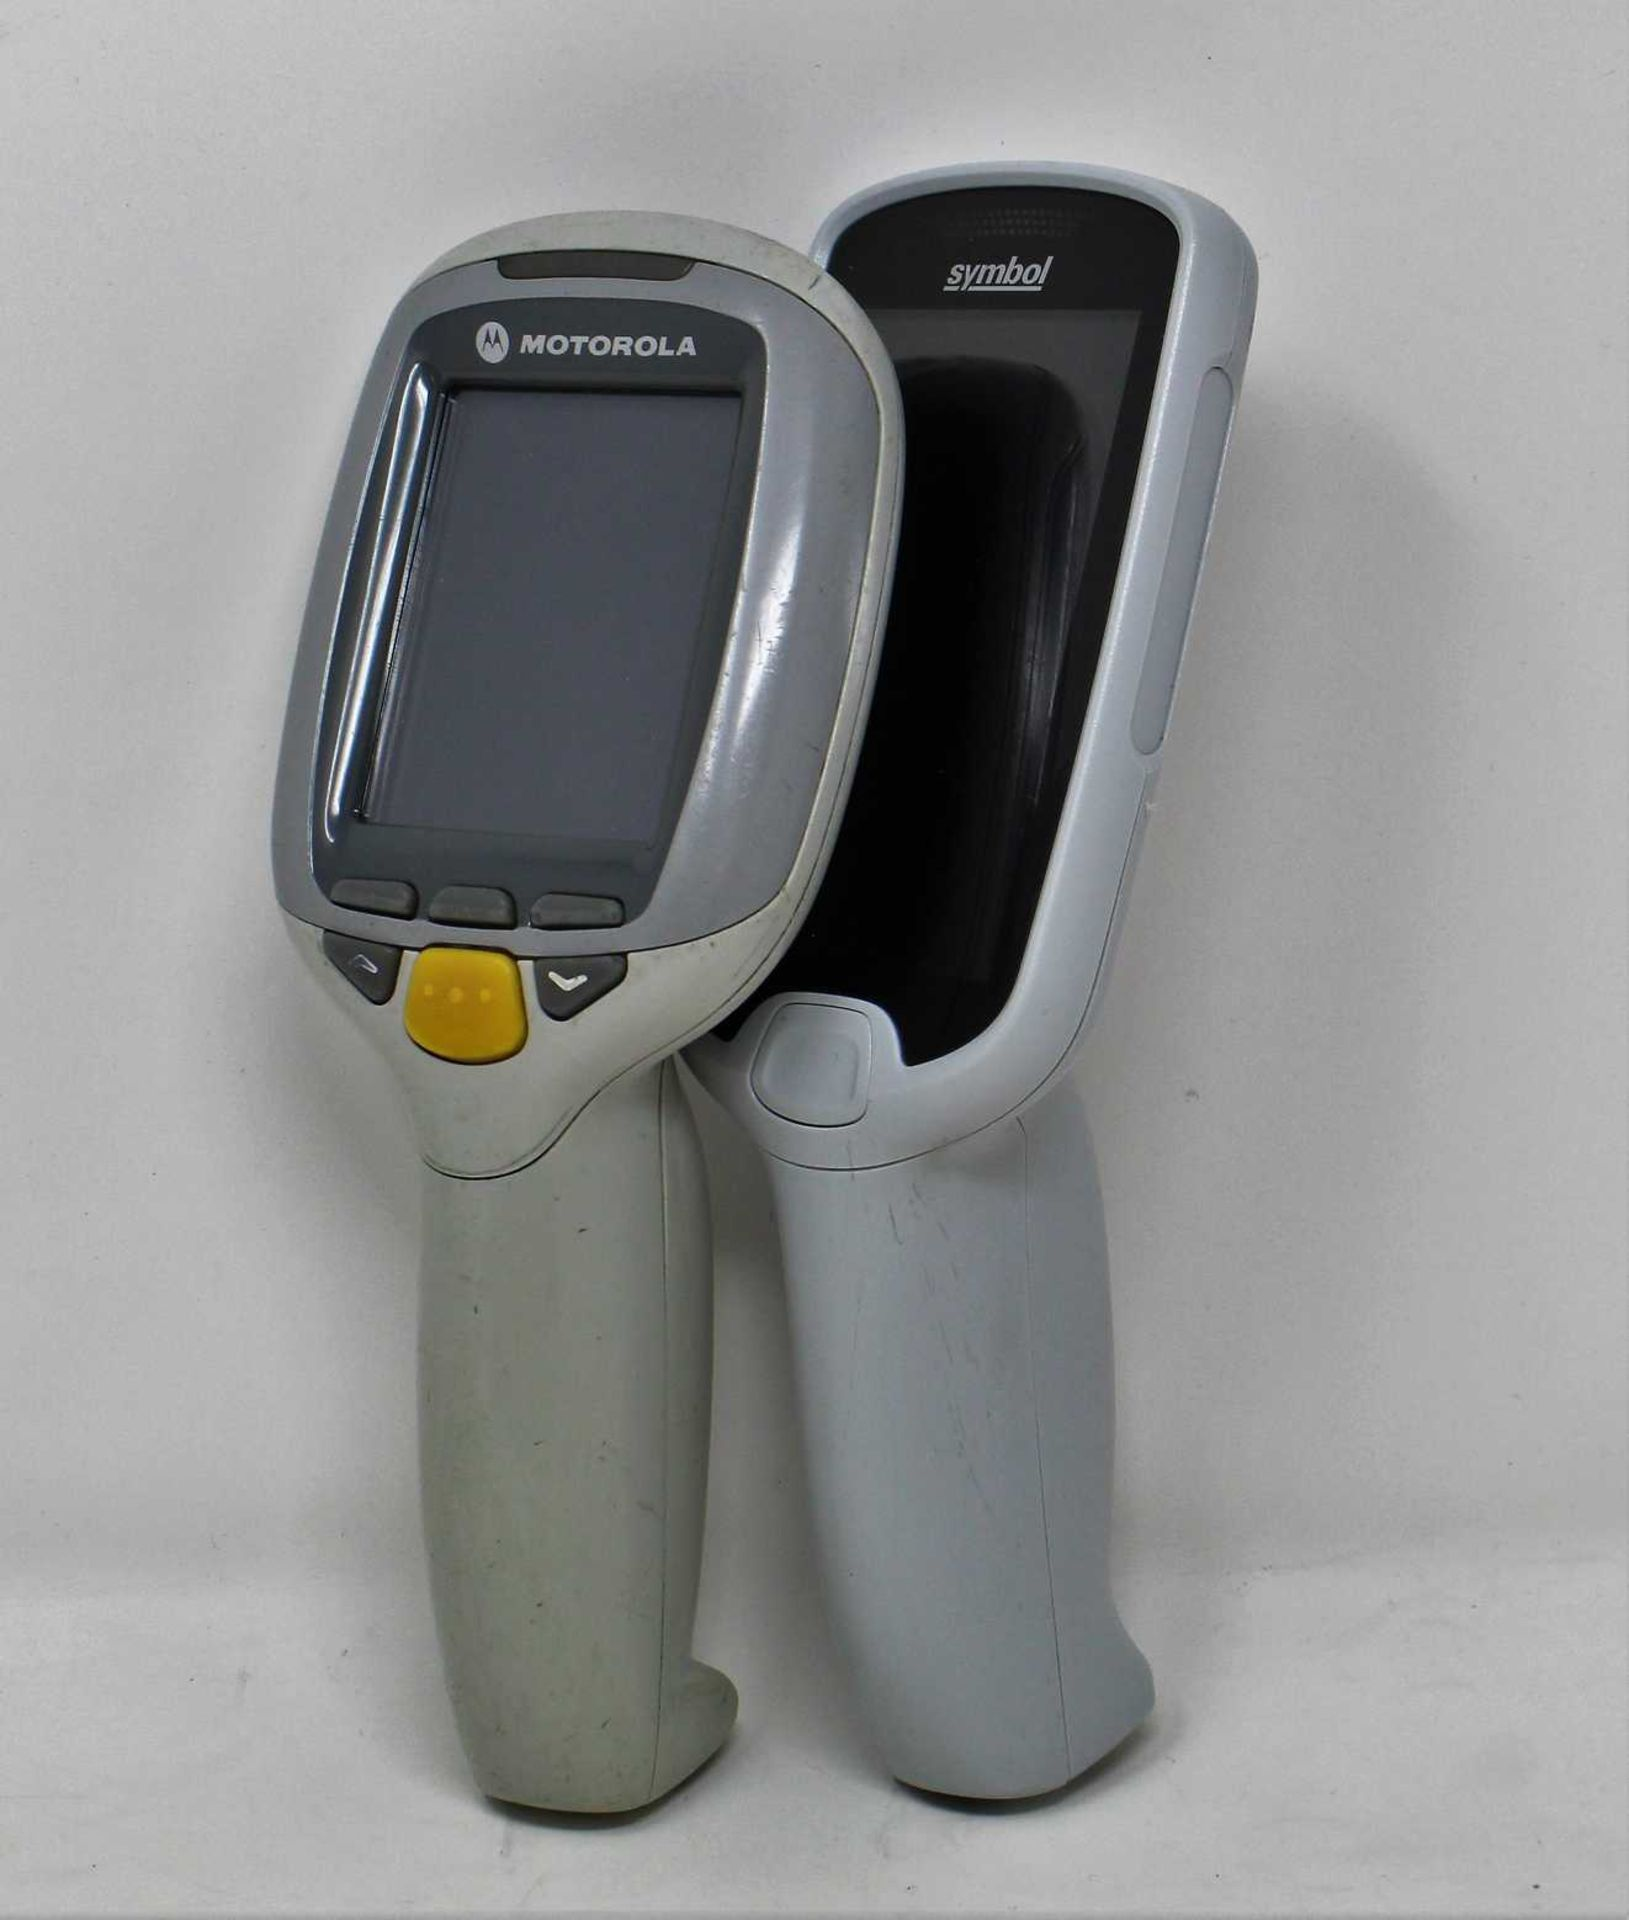 SOLD FOR PARTS: A pre-owned Symbol MC18N0 Mobile Computer Barcode Scanner (M/N: MC18G-09-KIT-01A) (